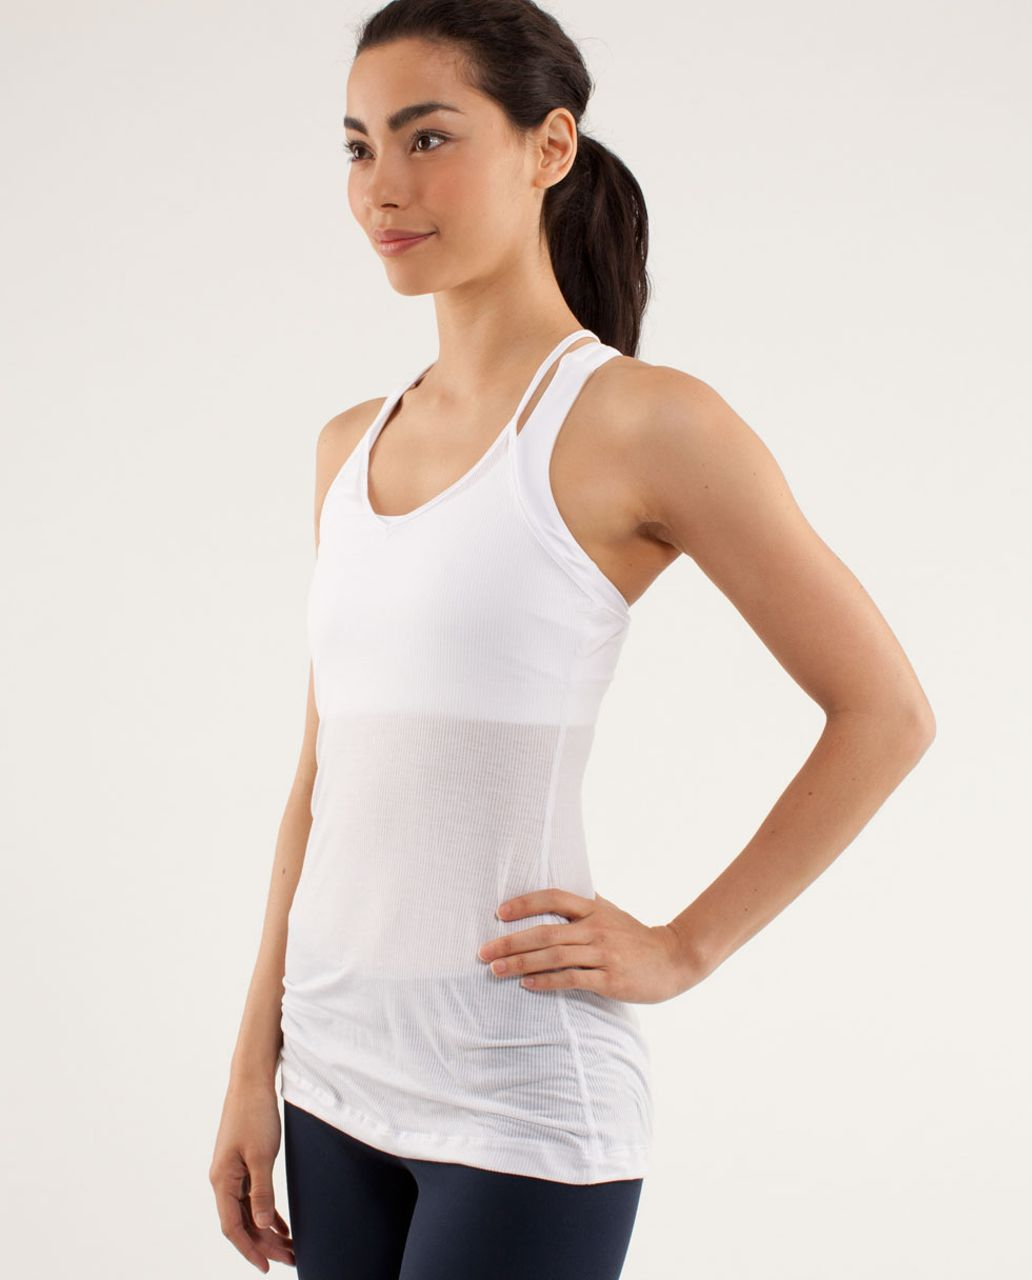 Lululemon Light Hearted Tank - Tonka Stripe White